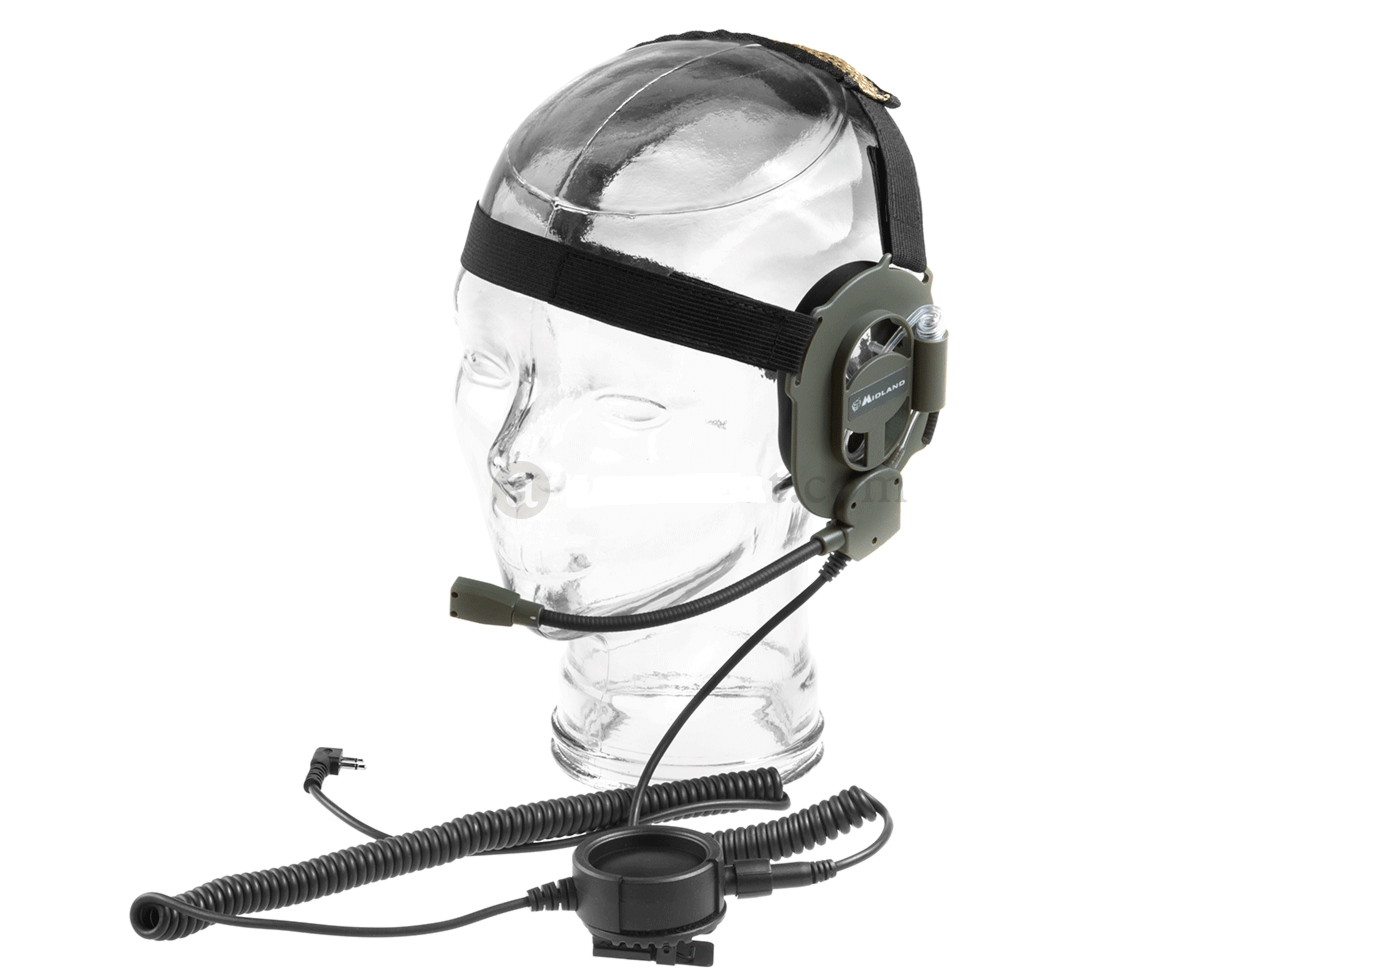 MIDLAND® Military BOW-M EVO Headset Double Audio System - Midland 2 PIN